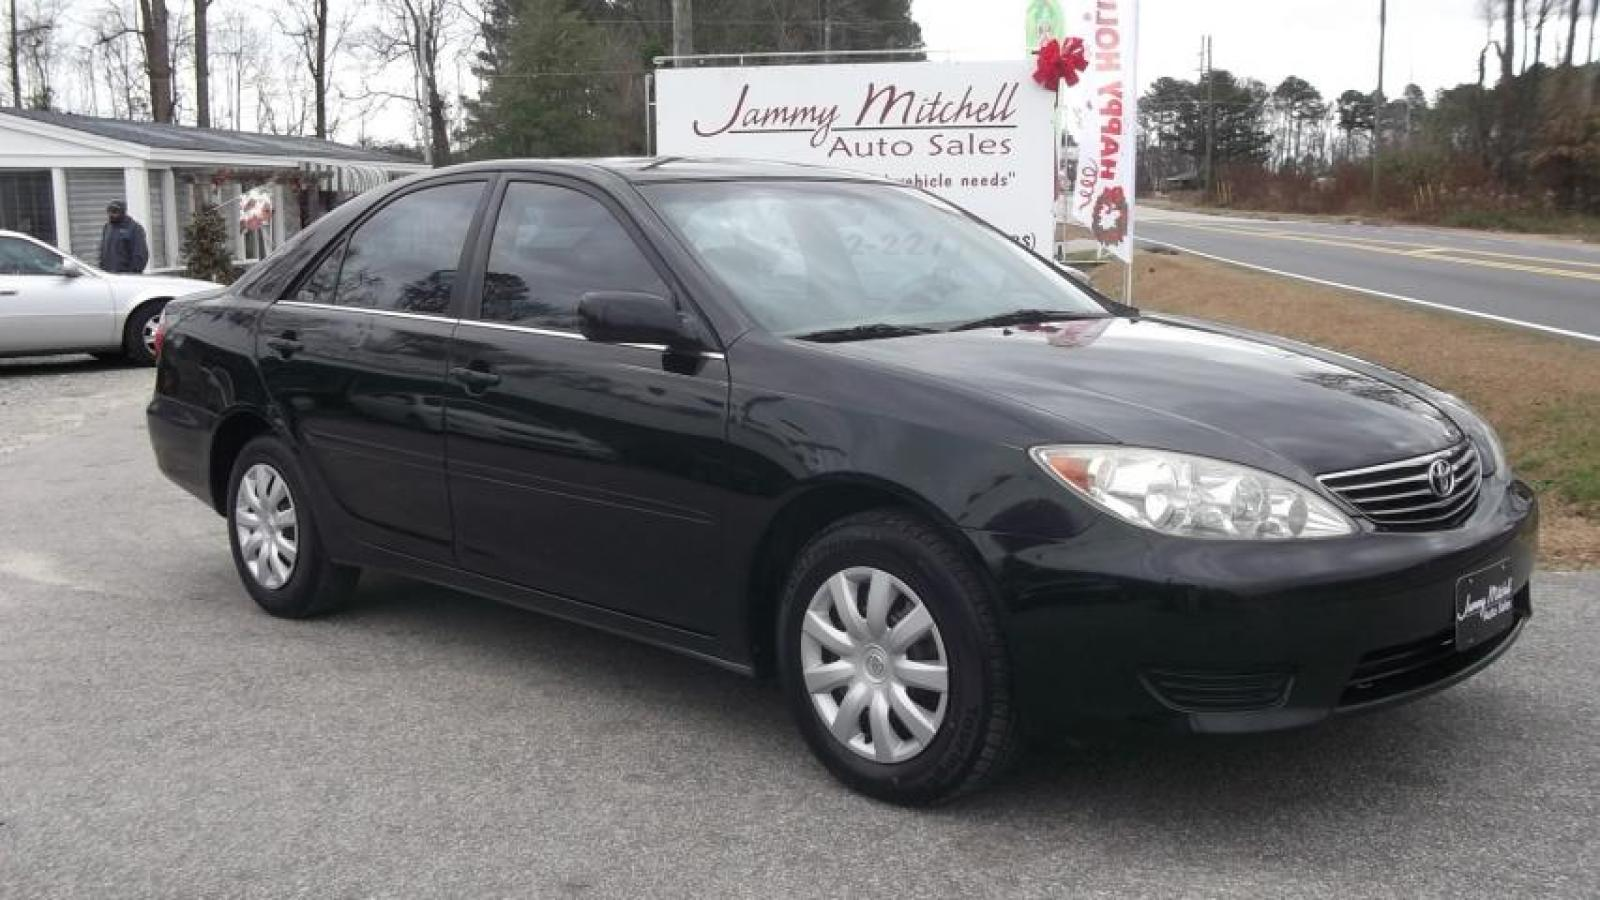 toyota camry 2006 opinie 2006 toyota camry specs pictures trims colors u ywany hyundai sonata. Black Bedroom Furniture Sets. Home Design Ideas